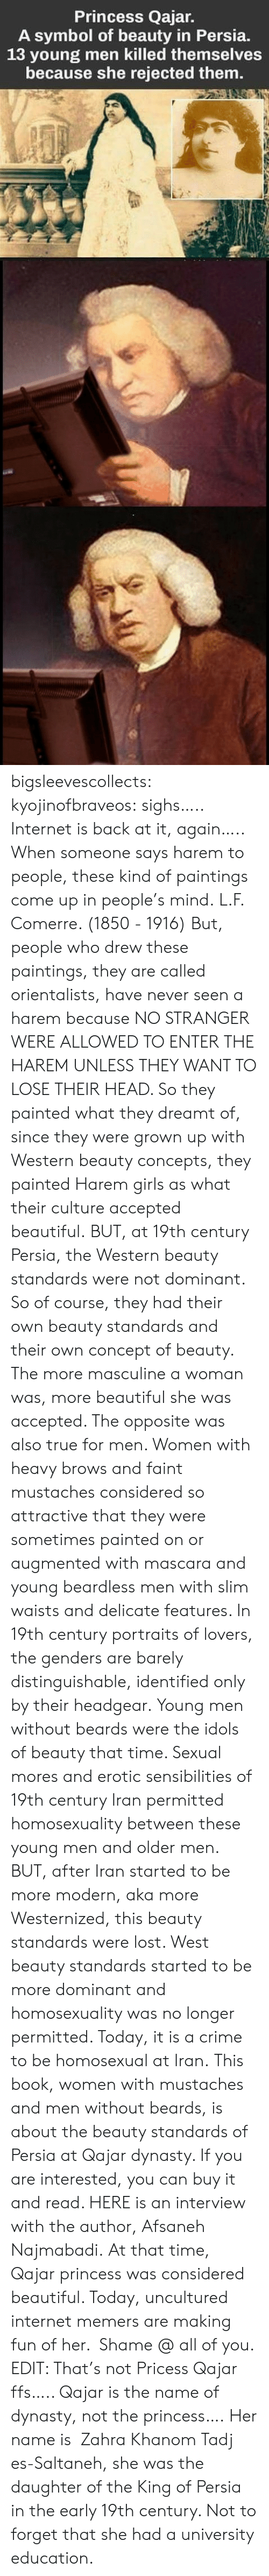 Western: Princess Qajar.  A symbol of beauty in Persia.  13 young men killed themselves  because she rejected them. bigsleevescollects: kyojinofbraveos:  sighs….. Internet is back at it, again….. When someone says harem to people, these kind of paintings come up in people's mind. L.F. Comerre. (1850 - 1916) But, people who drew these paintings, they are called orientalists, have never seen a harem because NO STRANGER WERE ALLOWED TO ENTER THE HAREM UNLESS THEY WANT TO LOSE THEIR HEAD. So they painted what they dreamt of, since they were grown up with Western beauty concepts, they painted Harem girls as what their culture accepted beautiful. BUT, at 19th century Persia, the Western beauty standards were not dominant. So of course, they had their own beauty standards and their own concept of beauty. The more masculine a woman was, more beautiful she was accepted. The opposite was also true for men. Women with heavy brows and faint mustachesconsidered so attractive that they were sometimes painted on or augmented with mascara and young beardless men with slim waists and delicate features. In 19th century portraits of lovers, the genders are barely distinguishable, identified only by their headgear. Young men without beards were the idols of beauty that time. Sexual mores and erotic sensibilities of 19th century Iran permitted homosexuality between these young men and older men. BUT, after Iran started to be more modern, aka more Westernized, this beauty standards were lost. West beauty standards started to be more dominant and homosexuality was no longer permitted. Today, it is a crime to be homosexual at Iran. This book, women with mustaches and men without beards, is about the beauty standards of Persia at Qajar dynasty. If you are interested, you can buy it and read. HERE is an interview with the author, Afsaneh Najmabadi. At that time, Qajar princess was considered beautiful. Today, uncultured internet memers are making fun of her. Shame @ all of you. EDIT: That's 